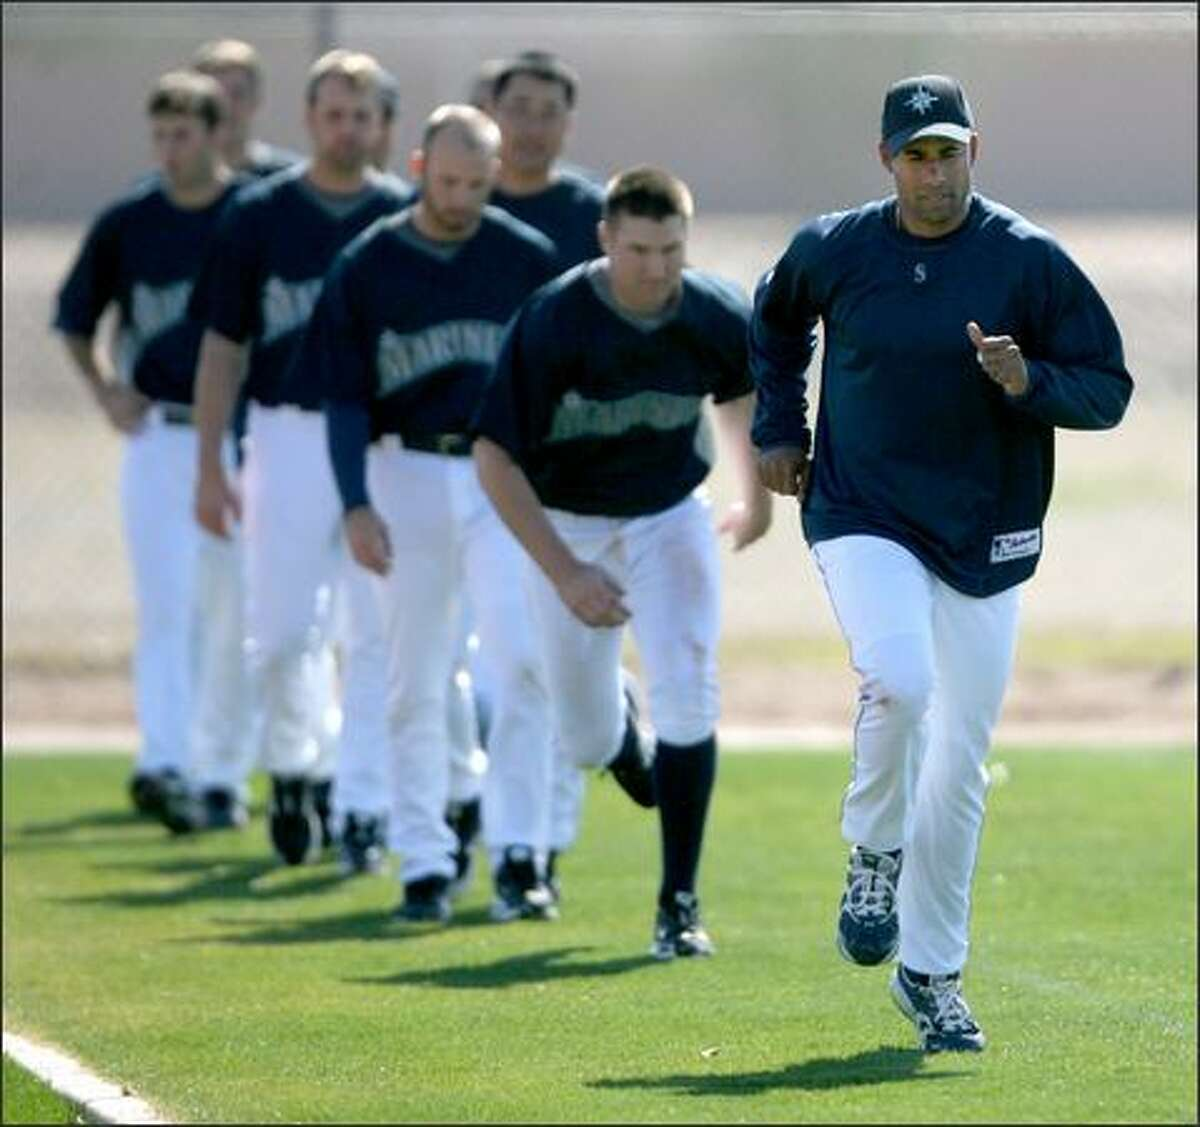 Miguel Batista works on conditioning during the Seattle Mariners workout on the second day of full-squad worksouts in Peoria, Ariz.